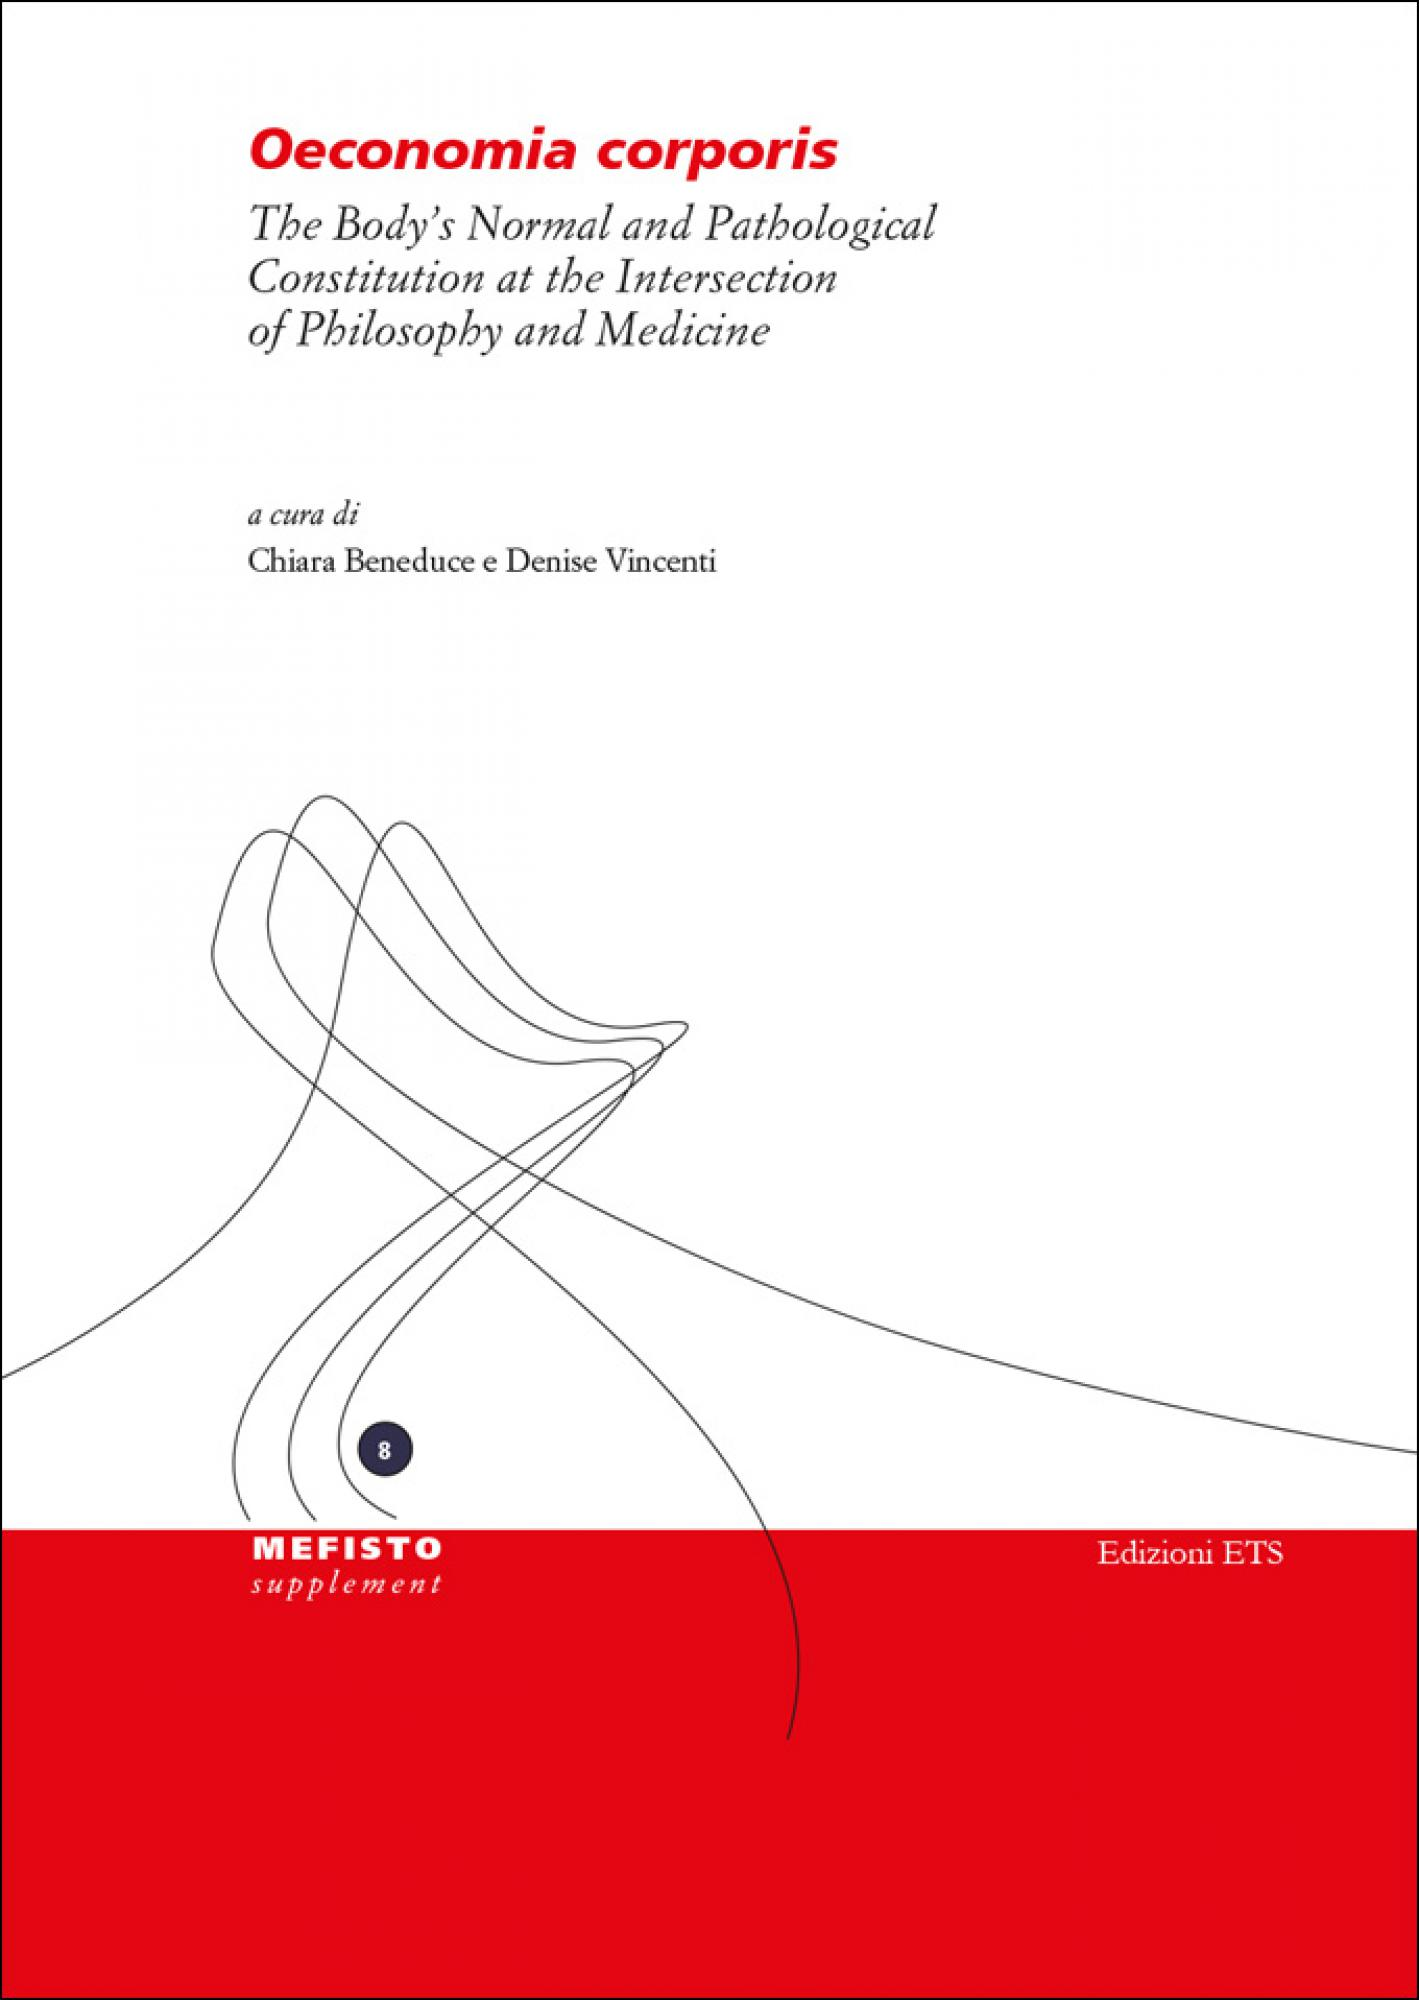 Oeconomia corporis.The Body's Normal and Pathological Constitution at the Intersection of Philosophy and Medicine